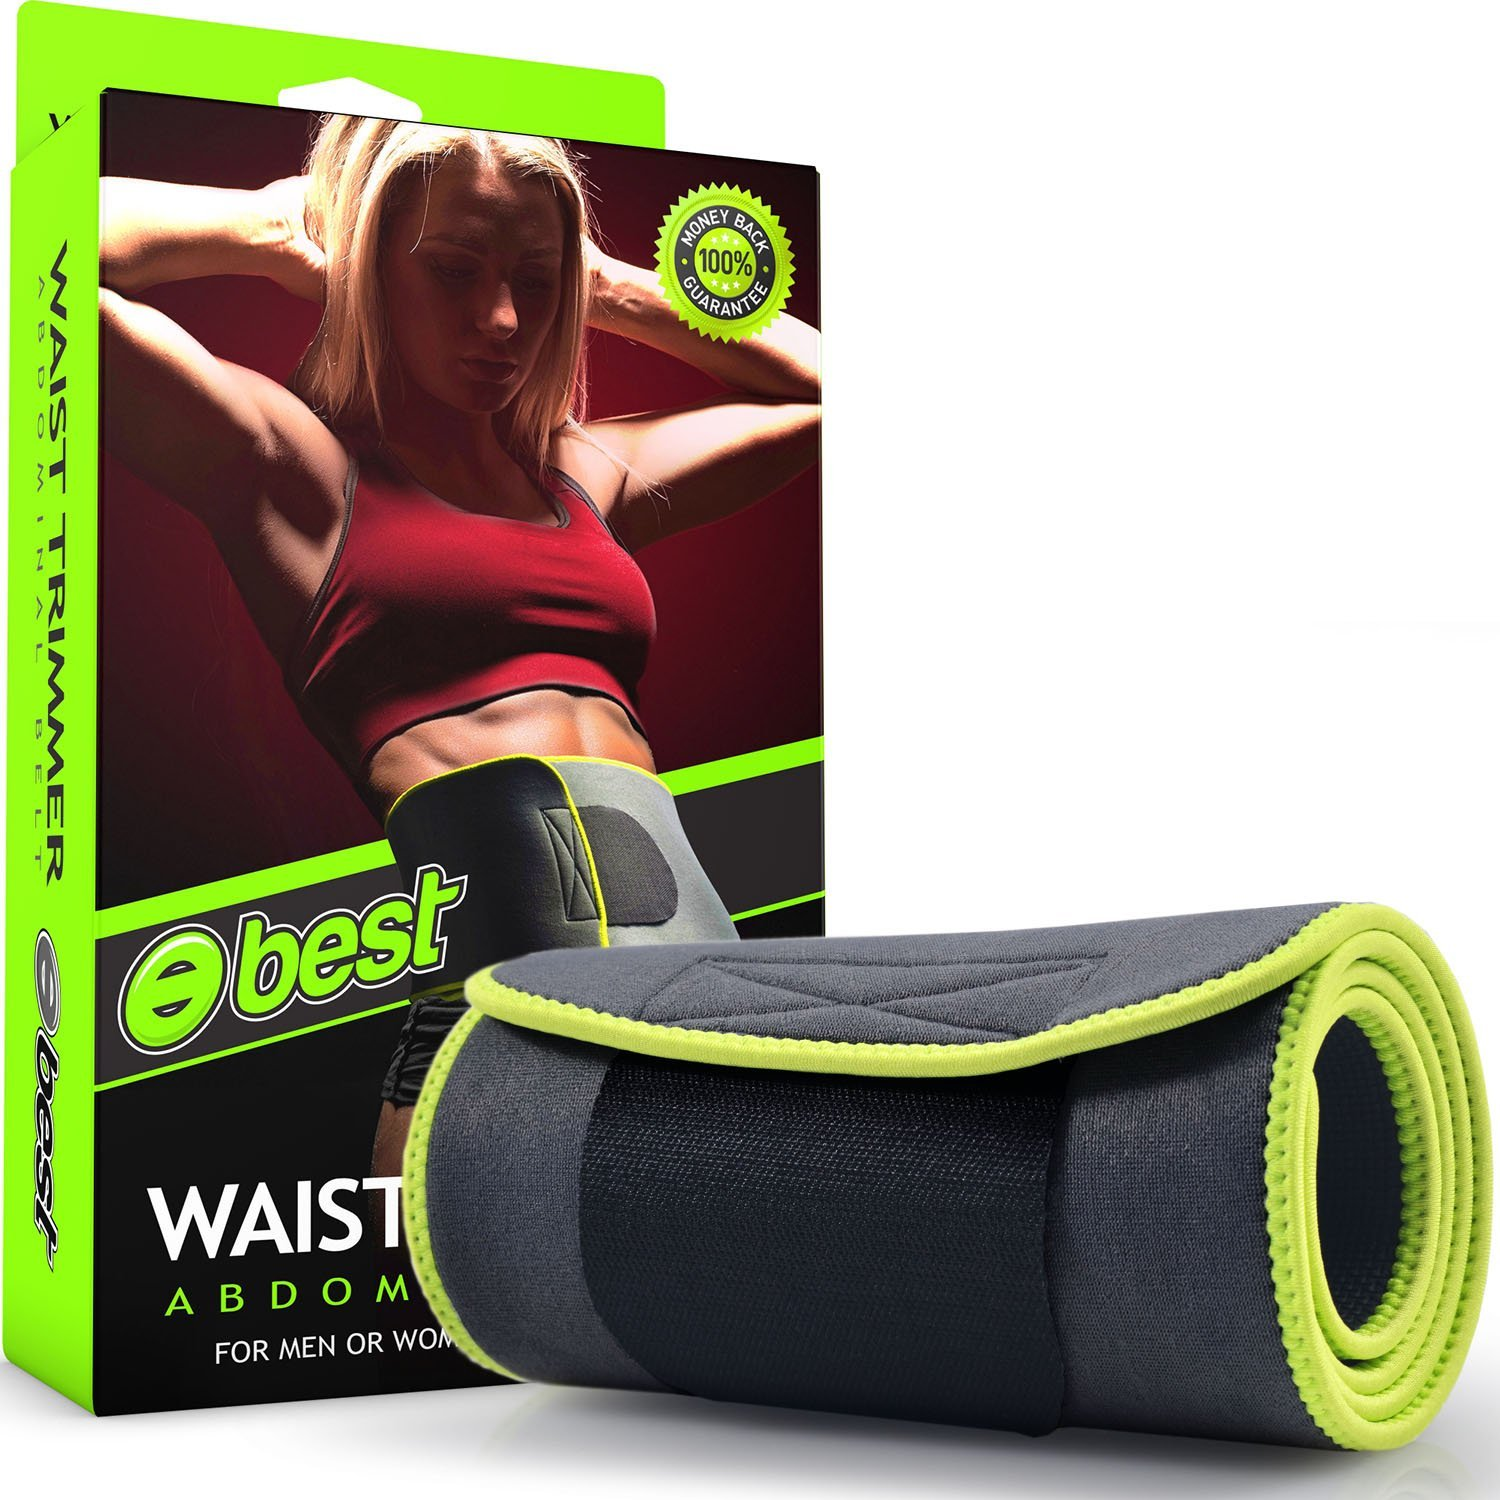 Premium Neoprene Stomach Wrap Waist Trimmer Belt